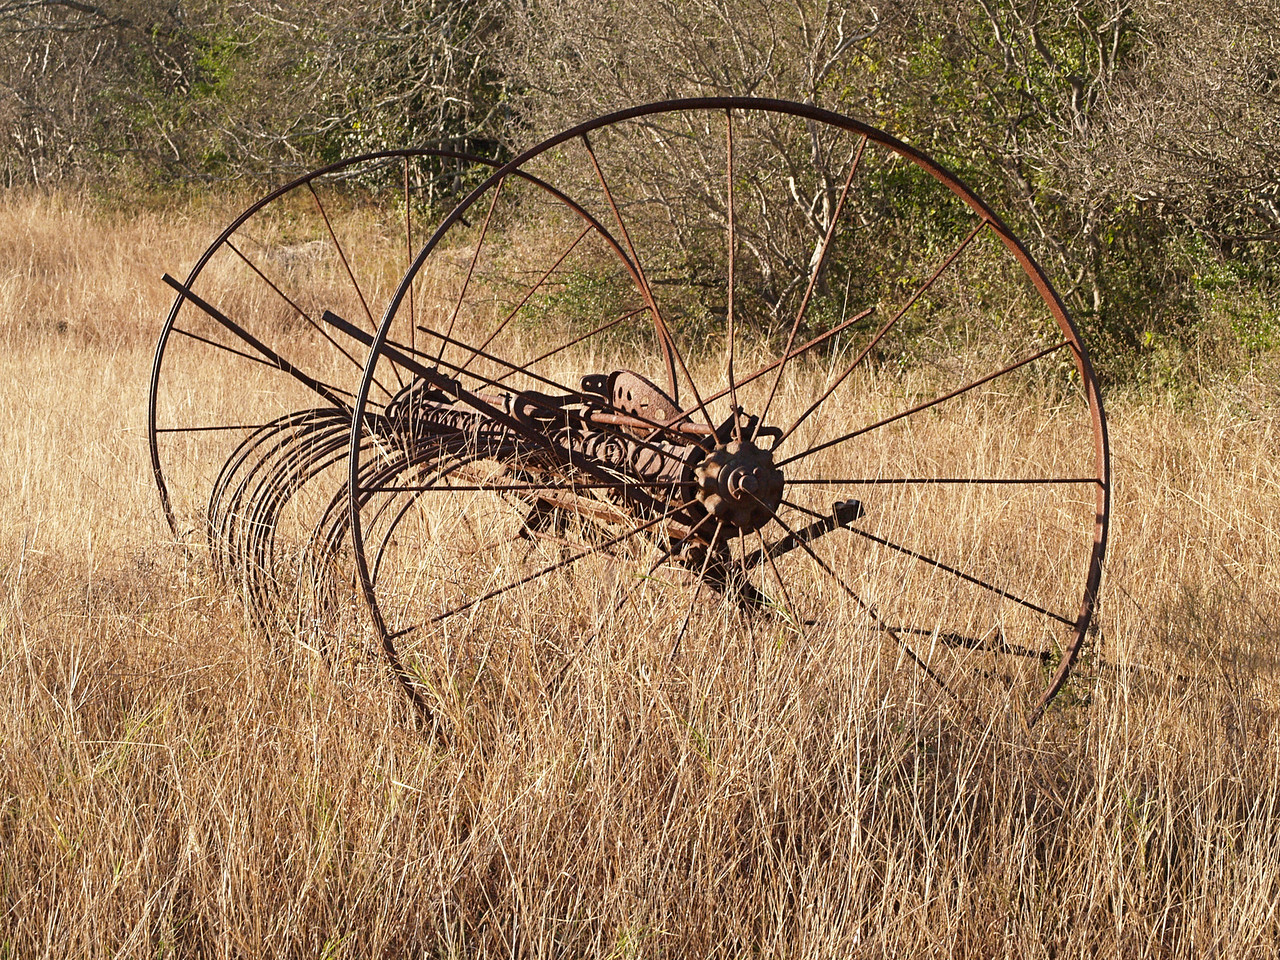 OLYMPUS DIGITAL CAMERA--An old hay rake that hasn't been moved since we parked it at this spot, thirtysomething years ago. It had probably sat at the old farmers place for at least fifty years prior to us moving it here.